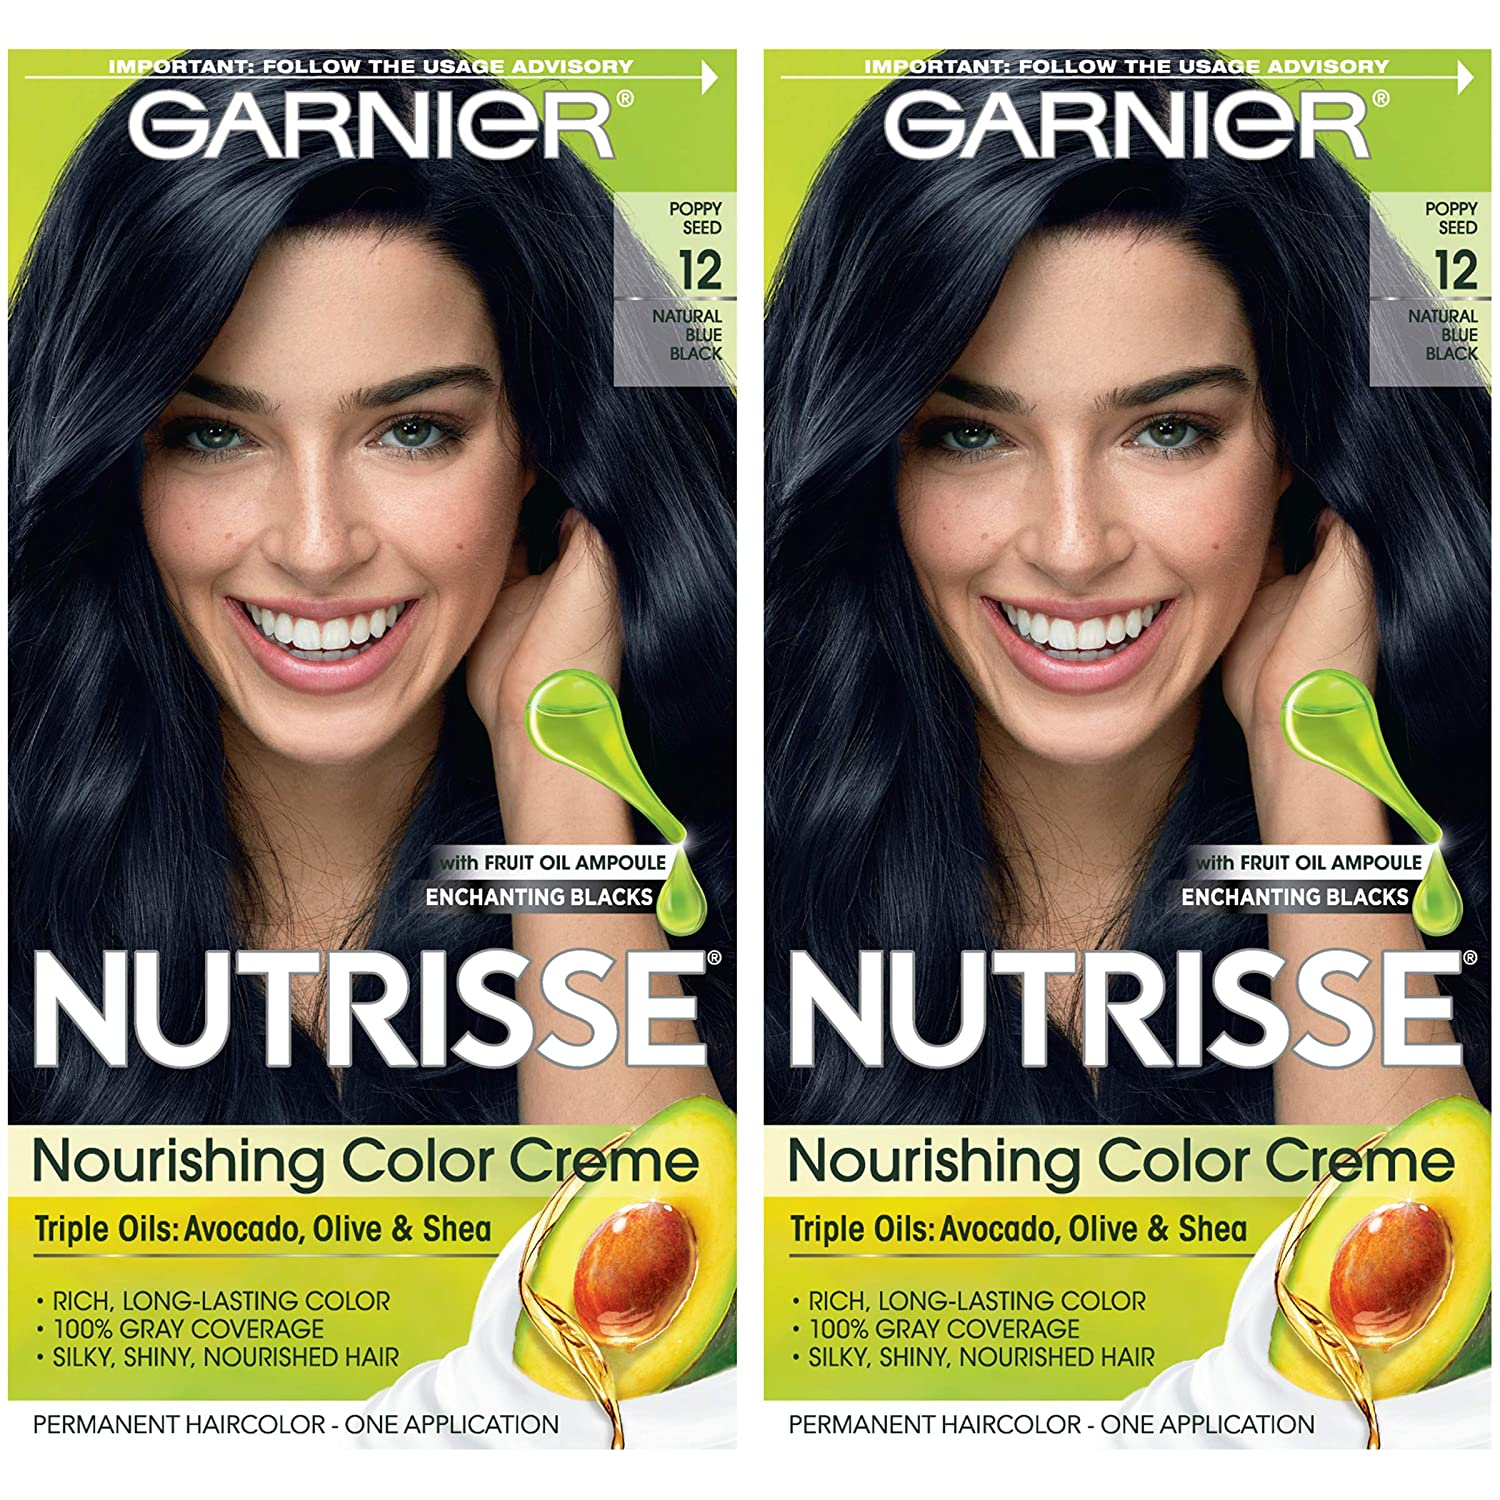 Garnier Nutrisse Nourishing Permanent Hair Color Cream, 12 Natural Blue Black (2 Count) Black Hair Dye